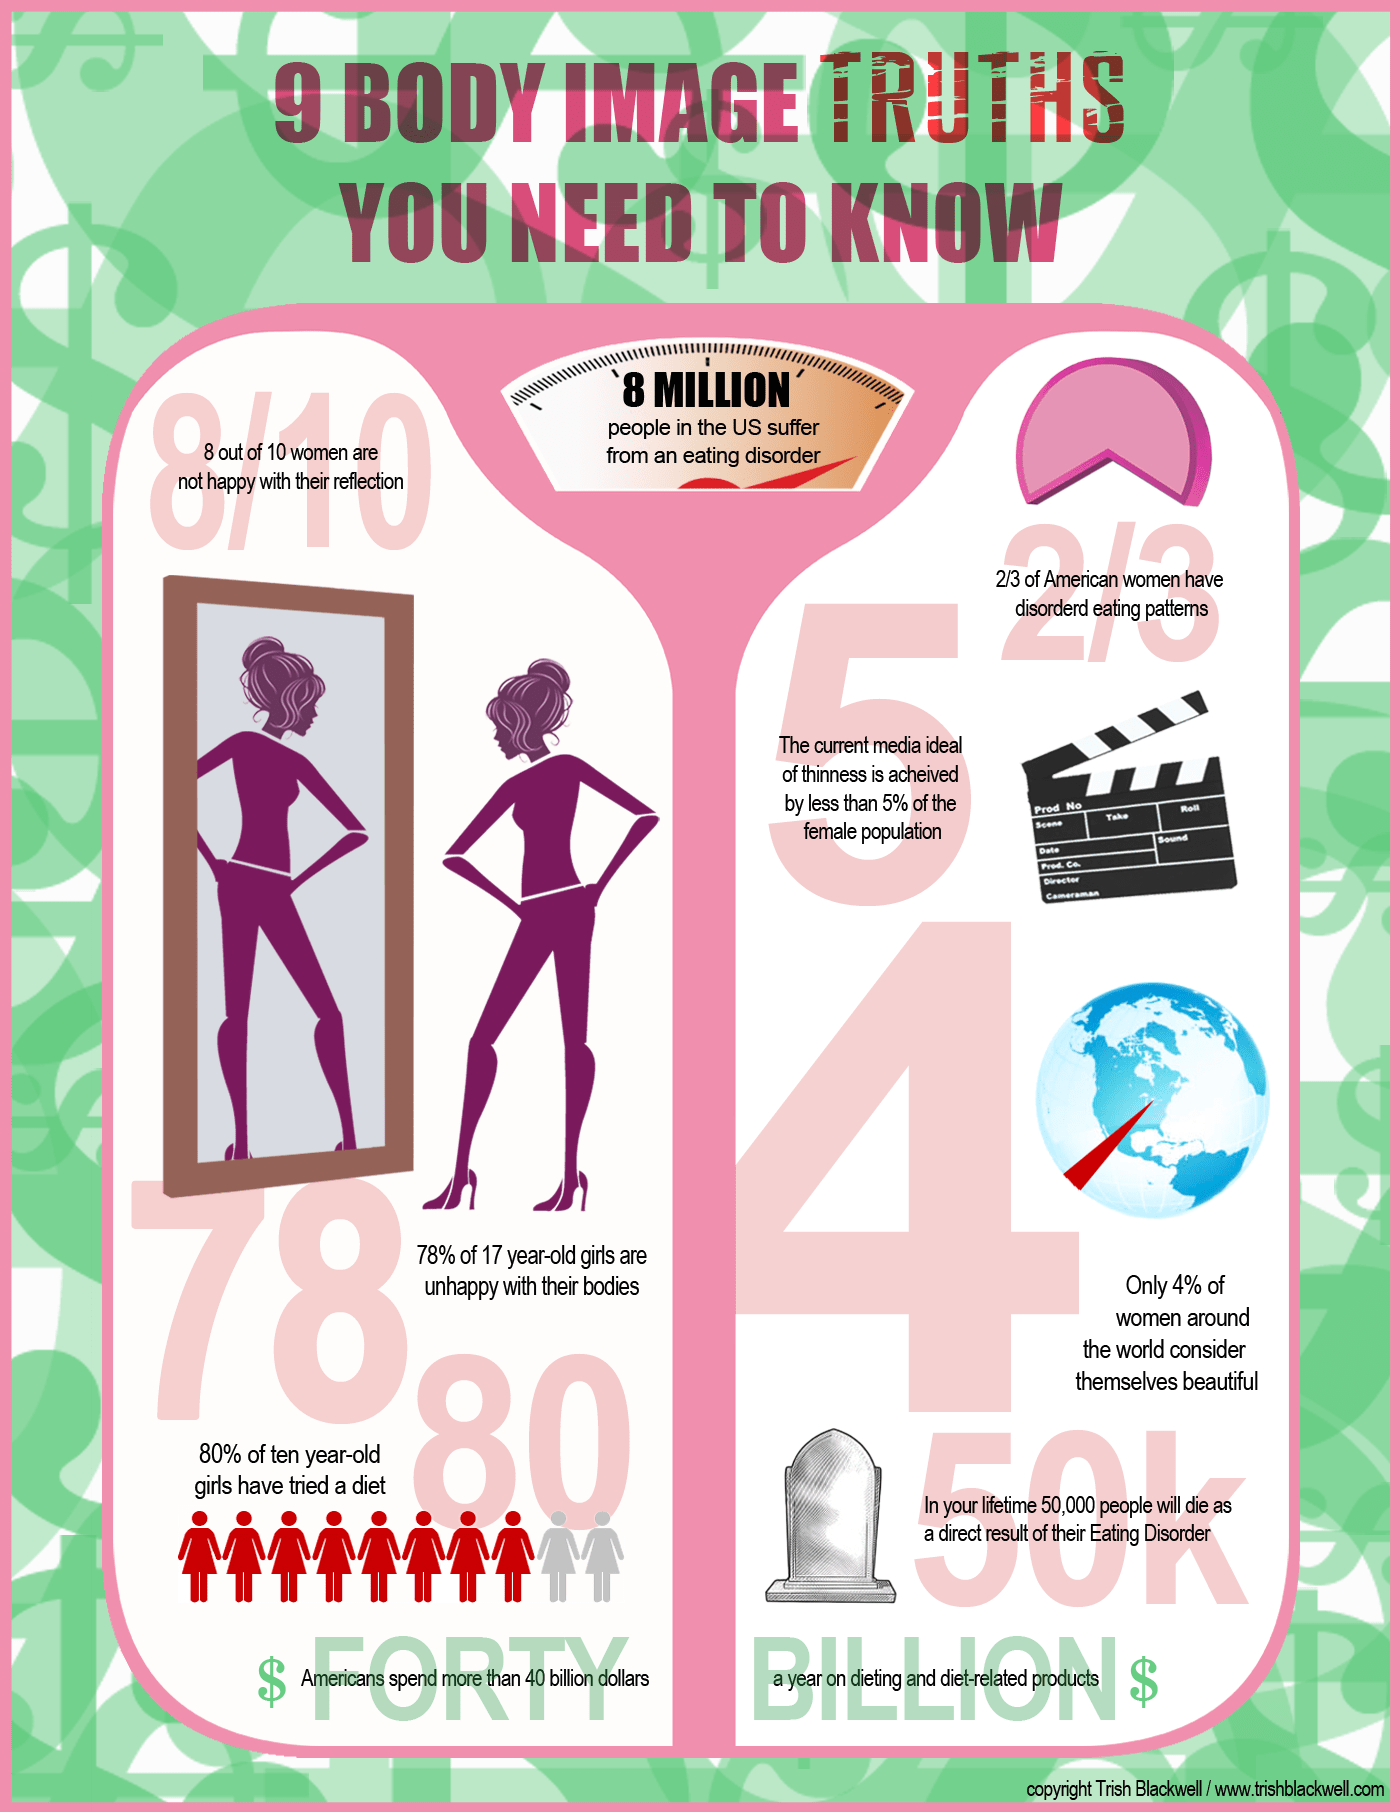 9 Body Image Truths You Need To Know